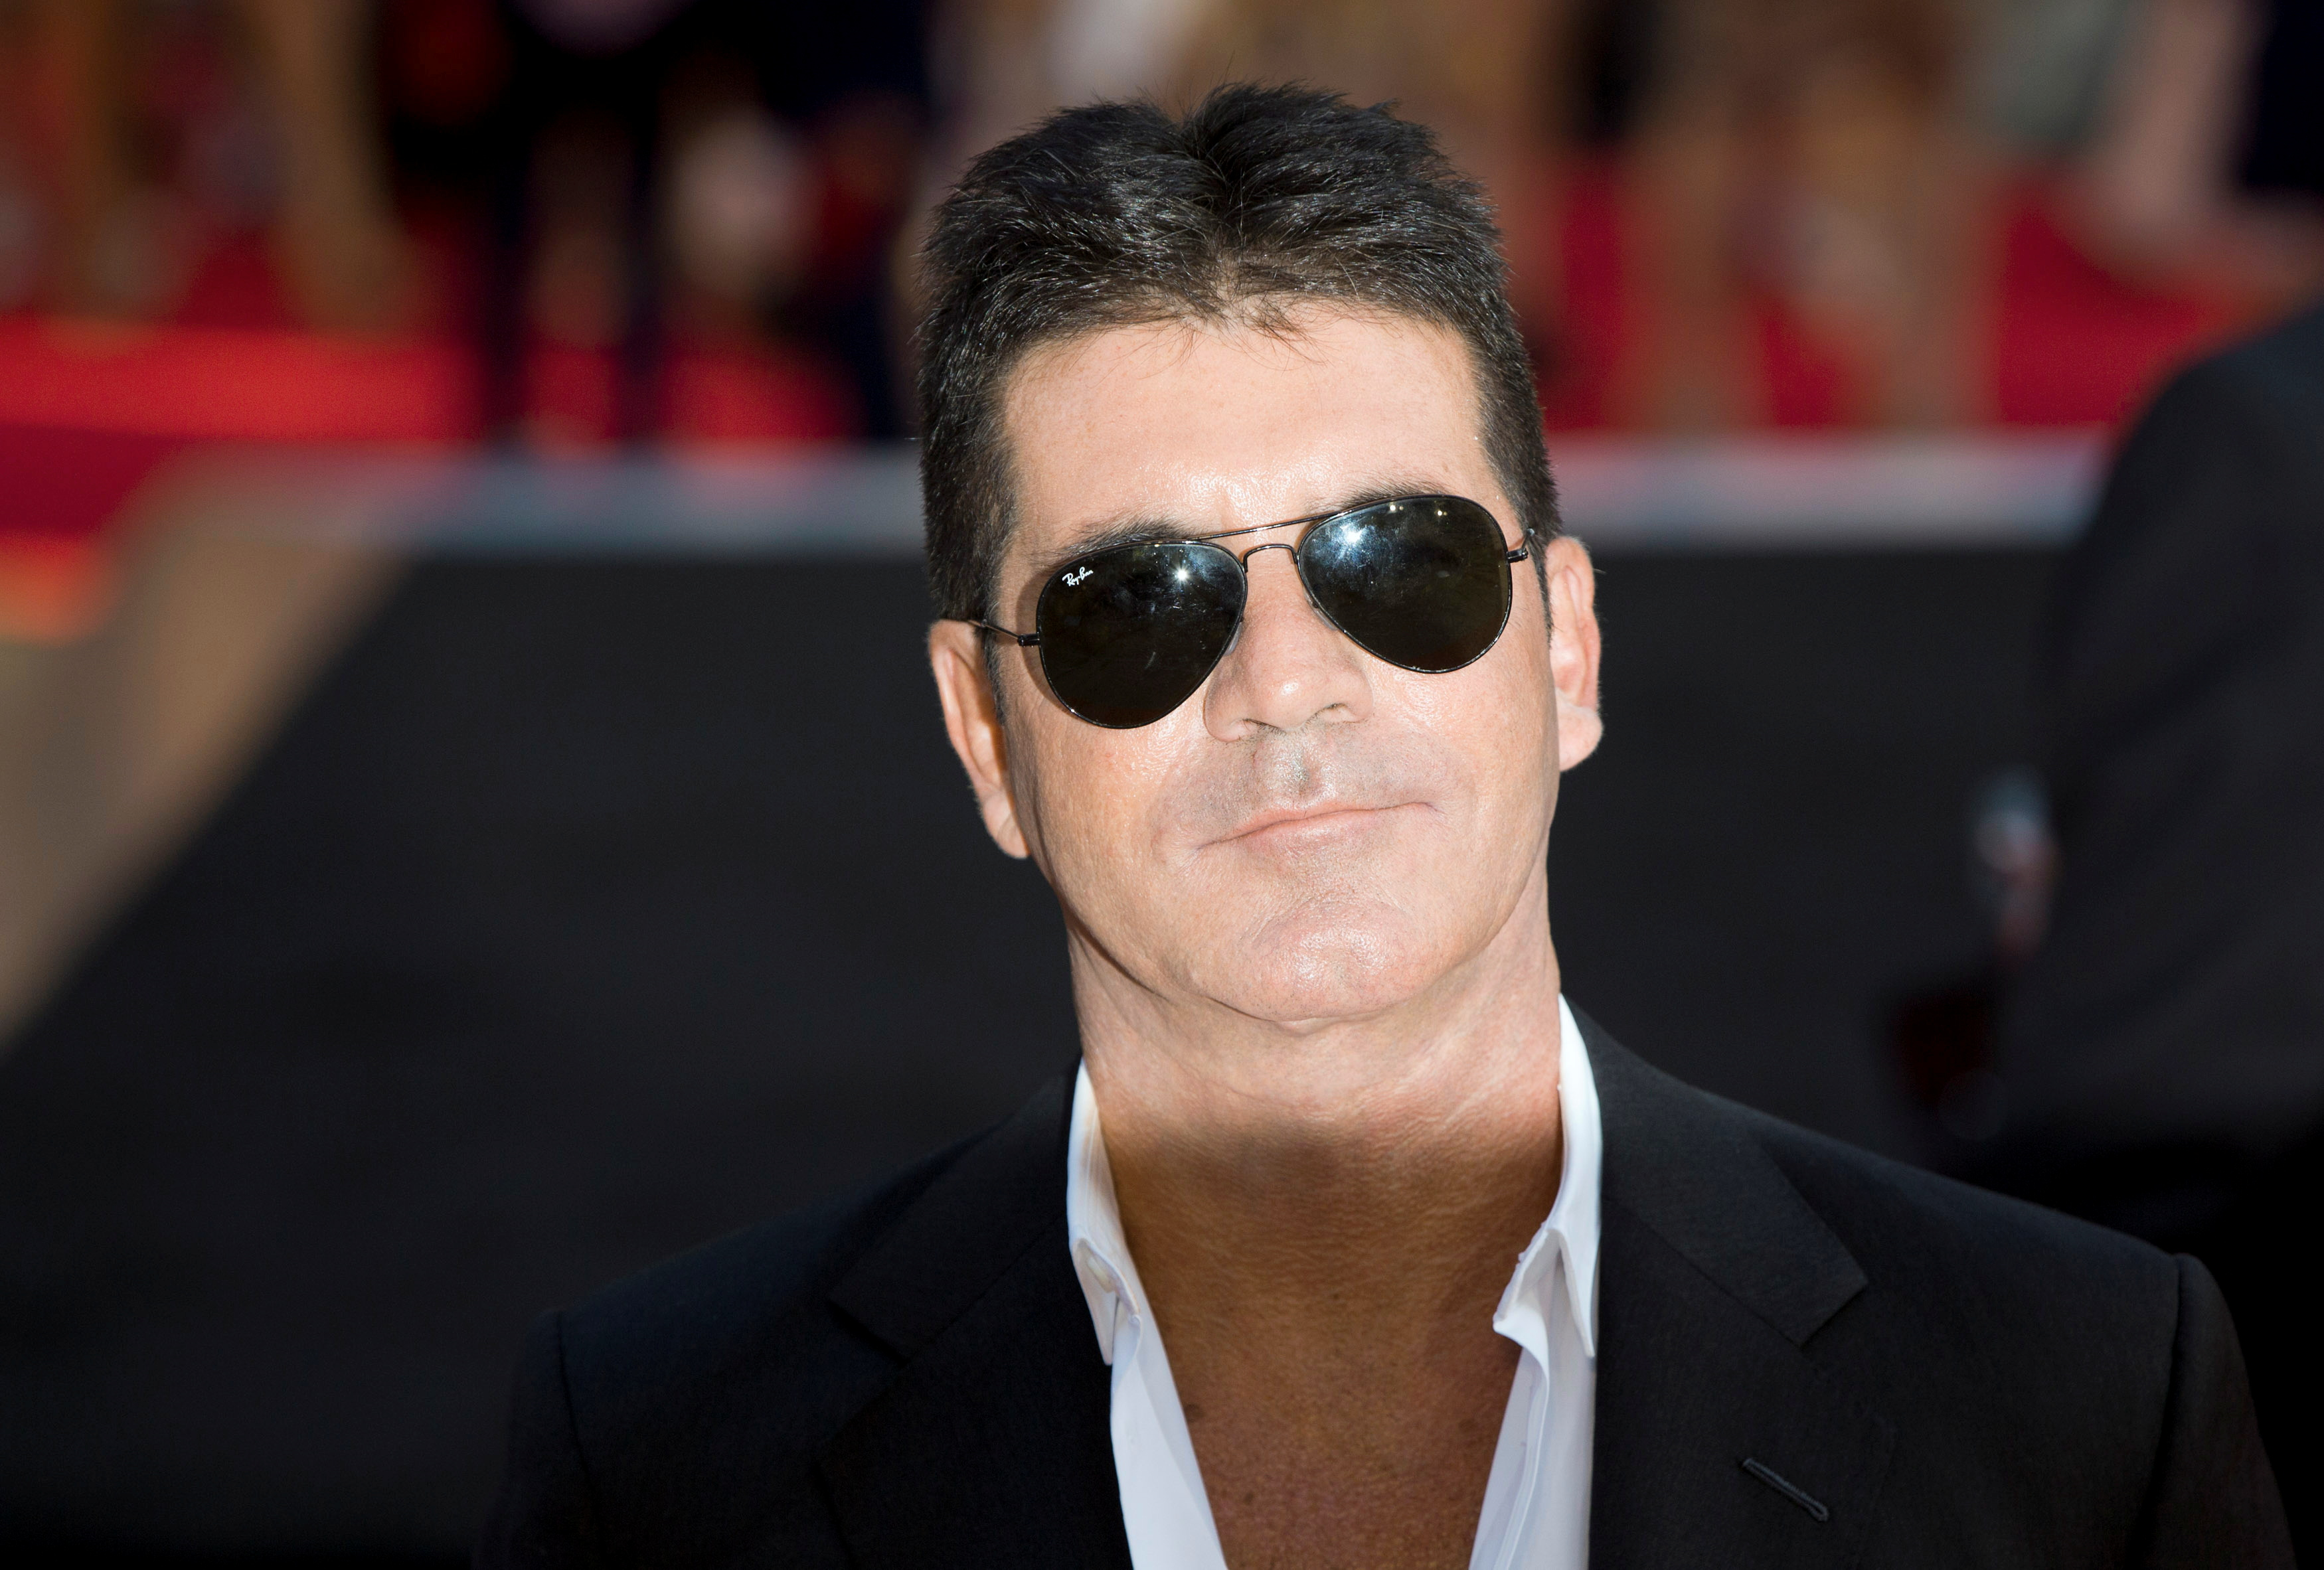 Television mogul Simon Cowell poses for photographers as he arrives for the film